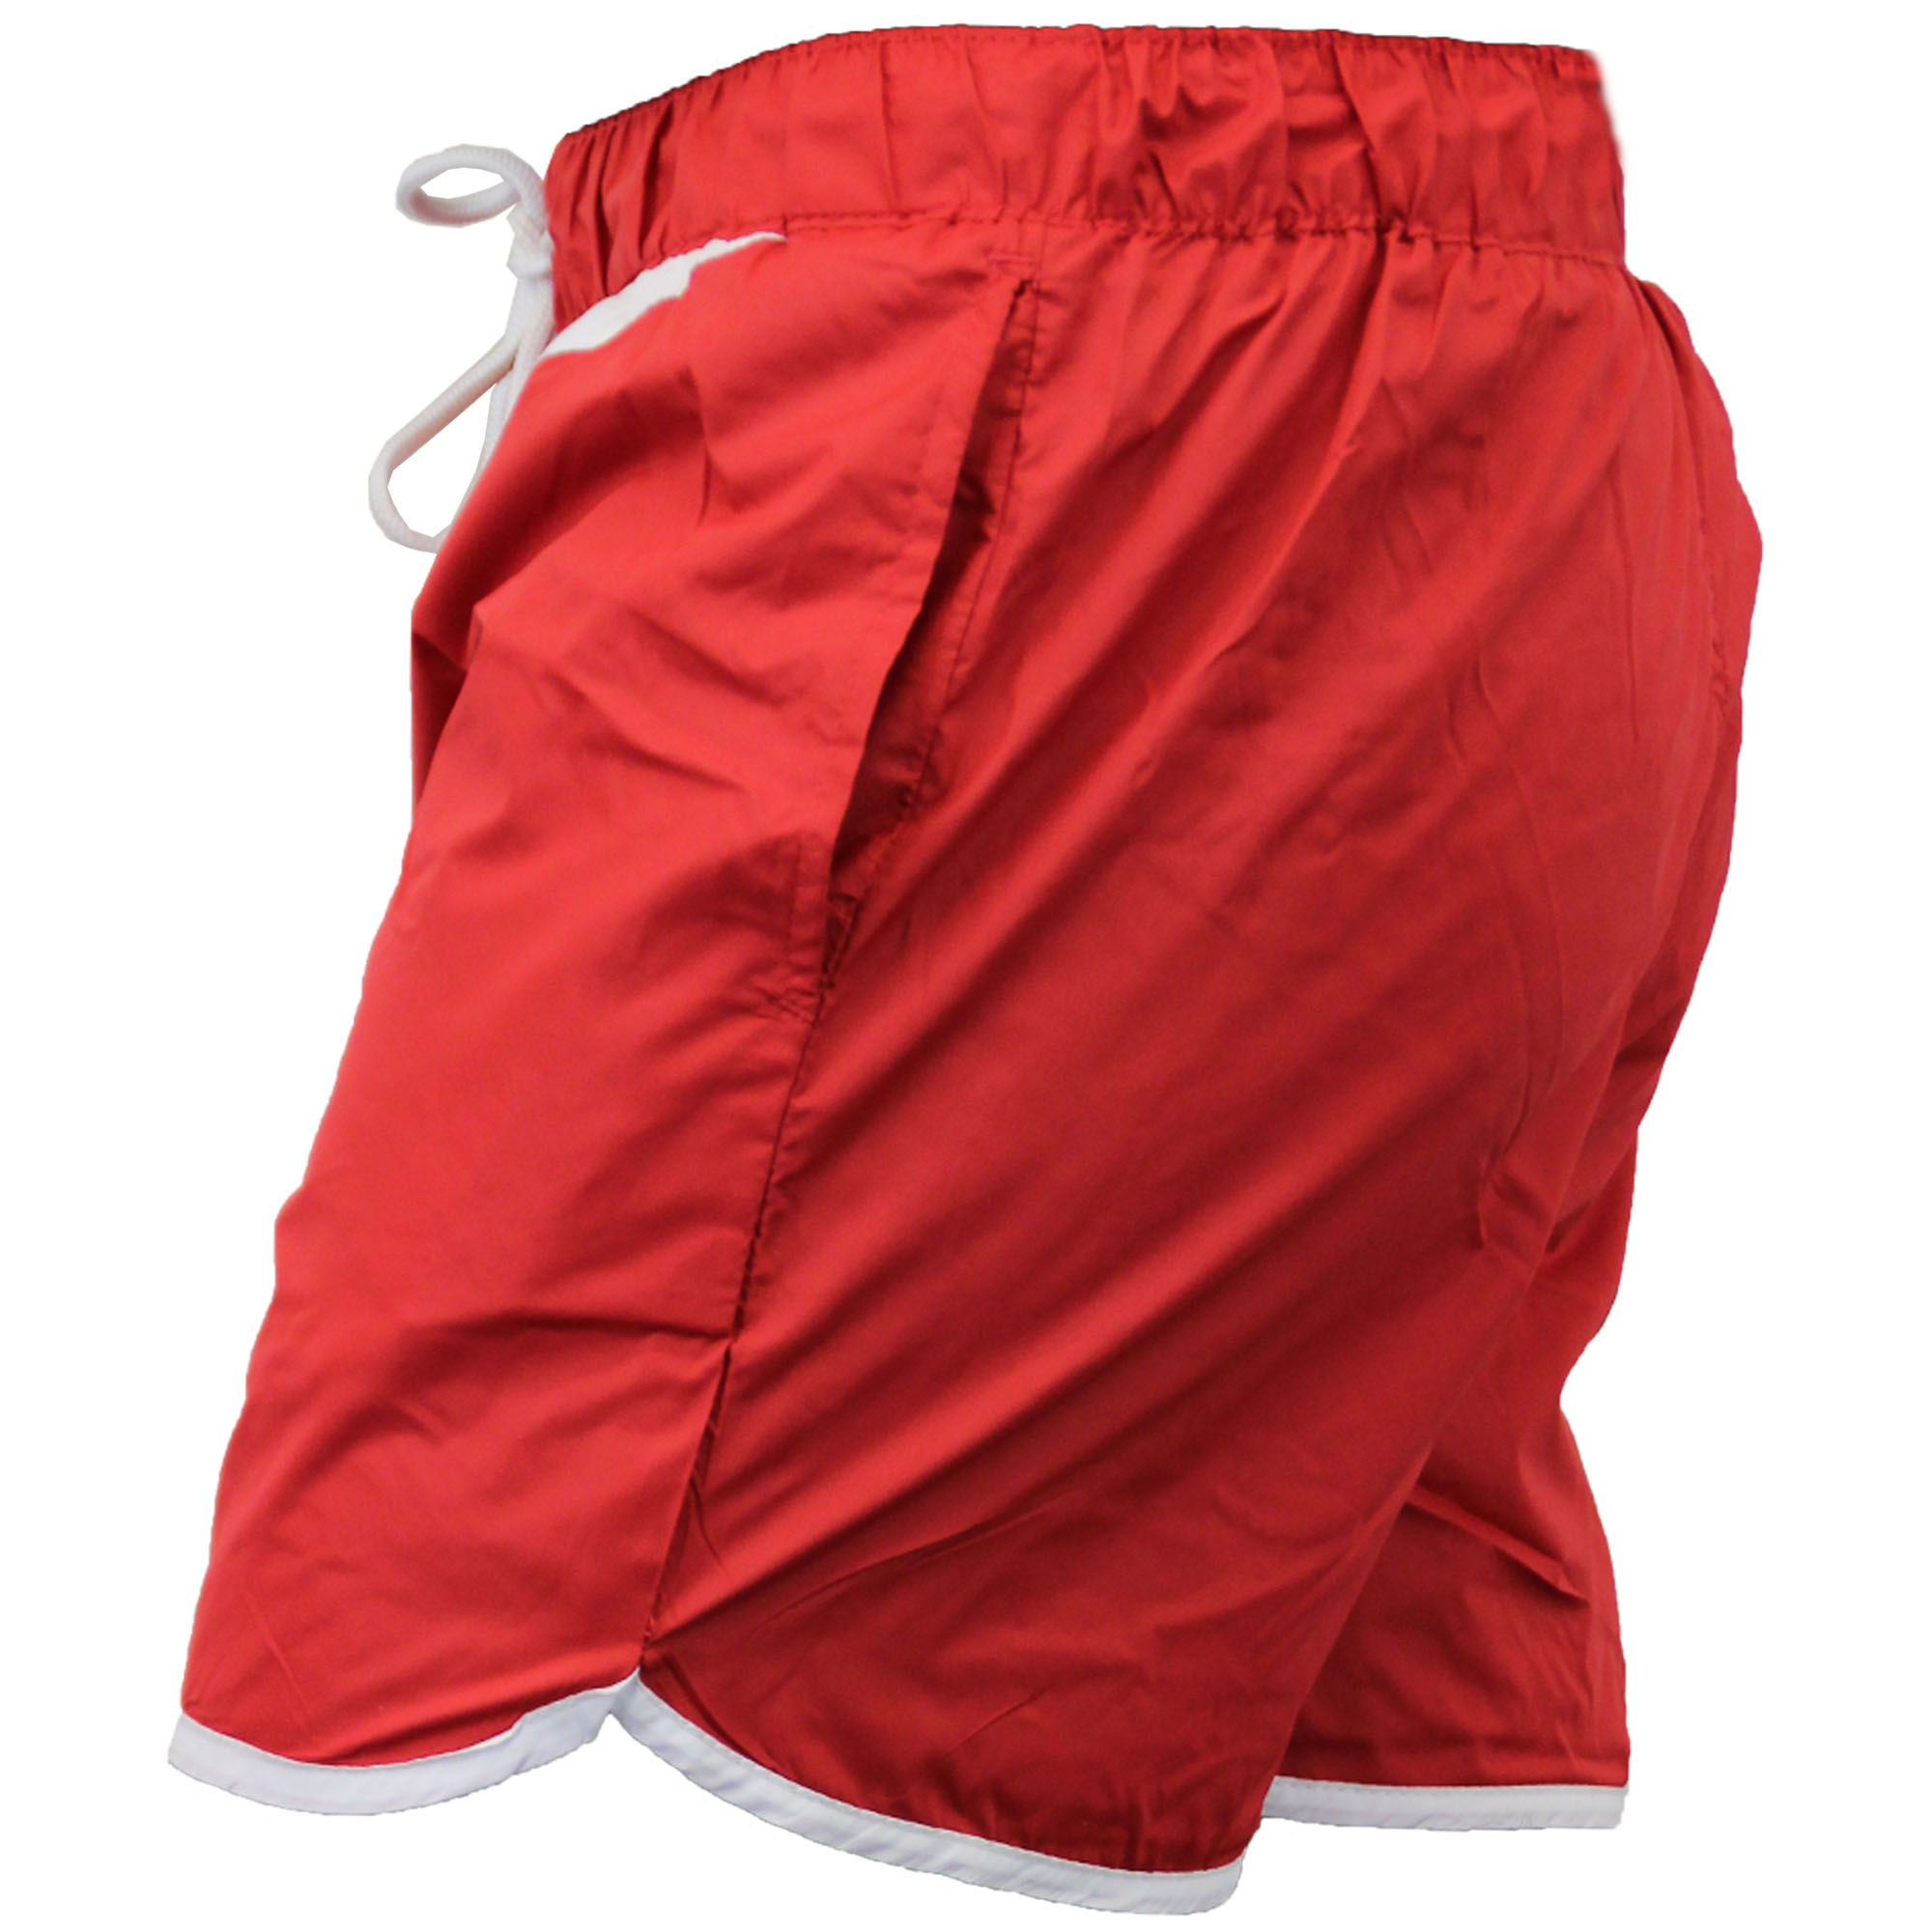 Mens-Swim-Board-Shorts-By-Brave-Soul-Mesh-Lined-New thumbnail 56